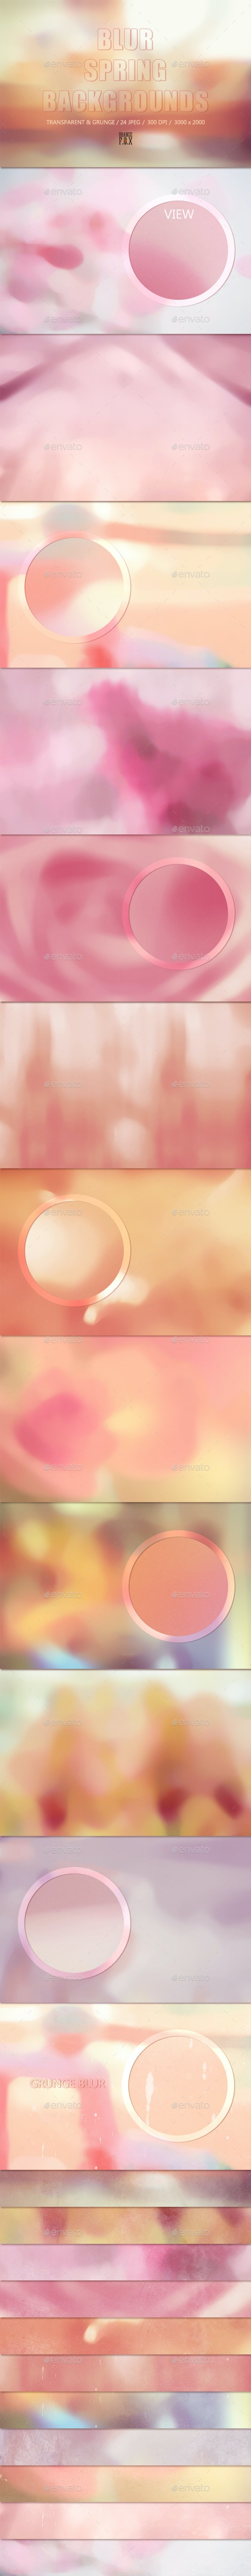 24 Blurred Spring Backgrounds - Abstract Backgrounds